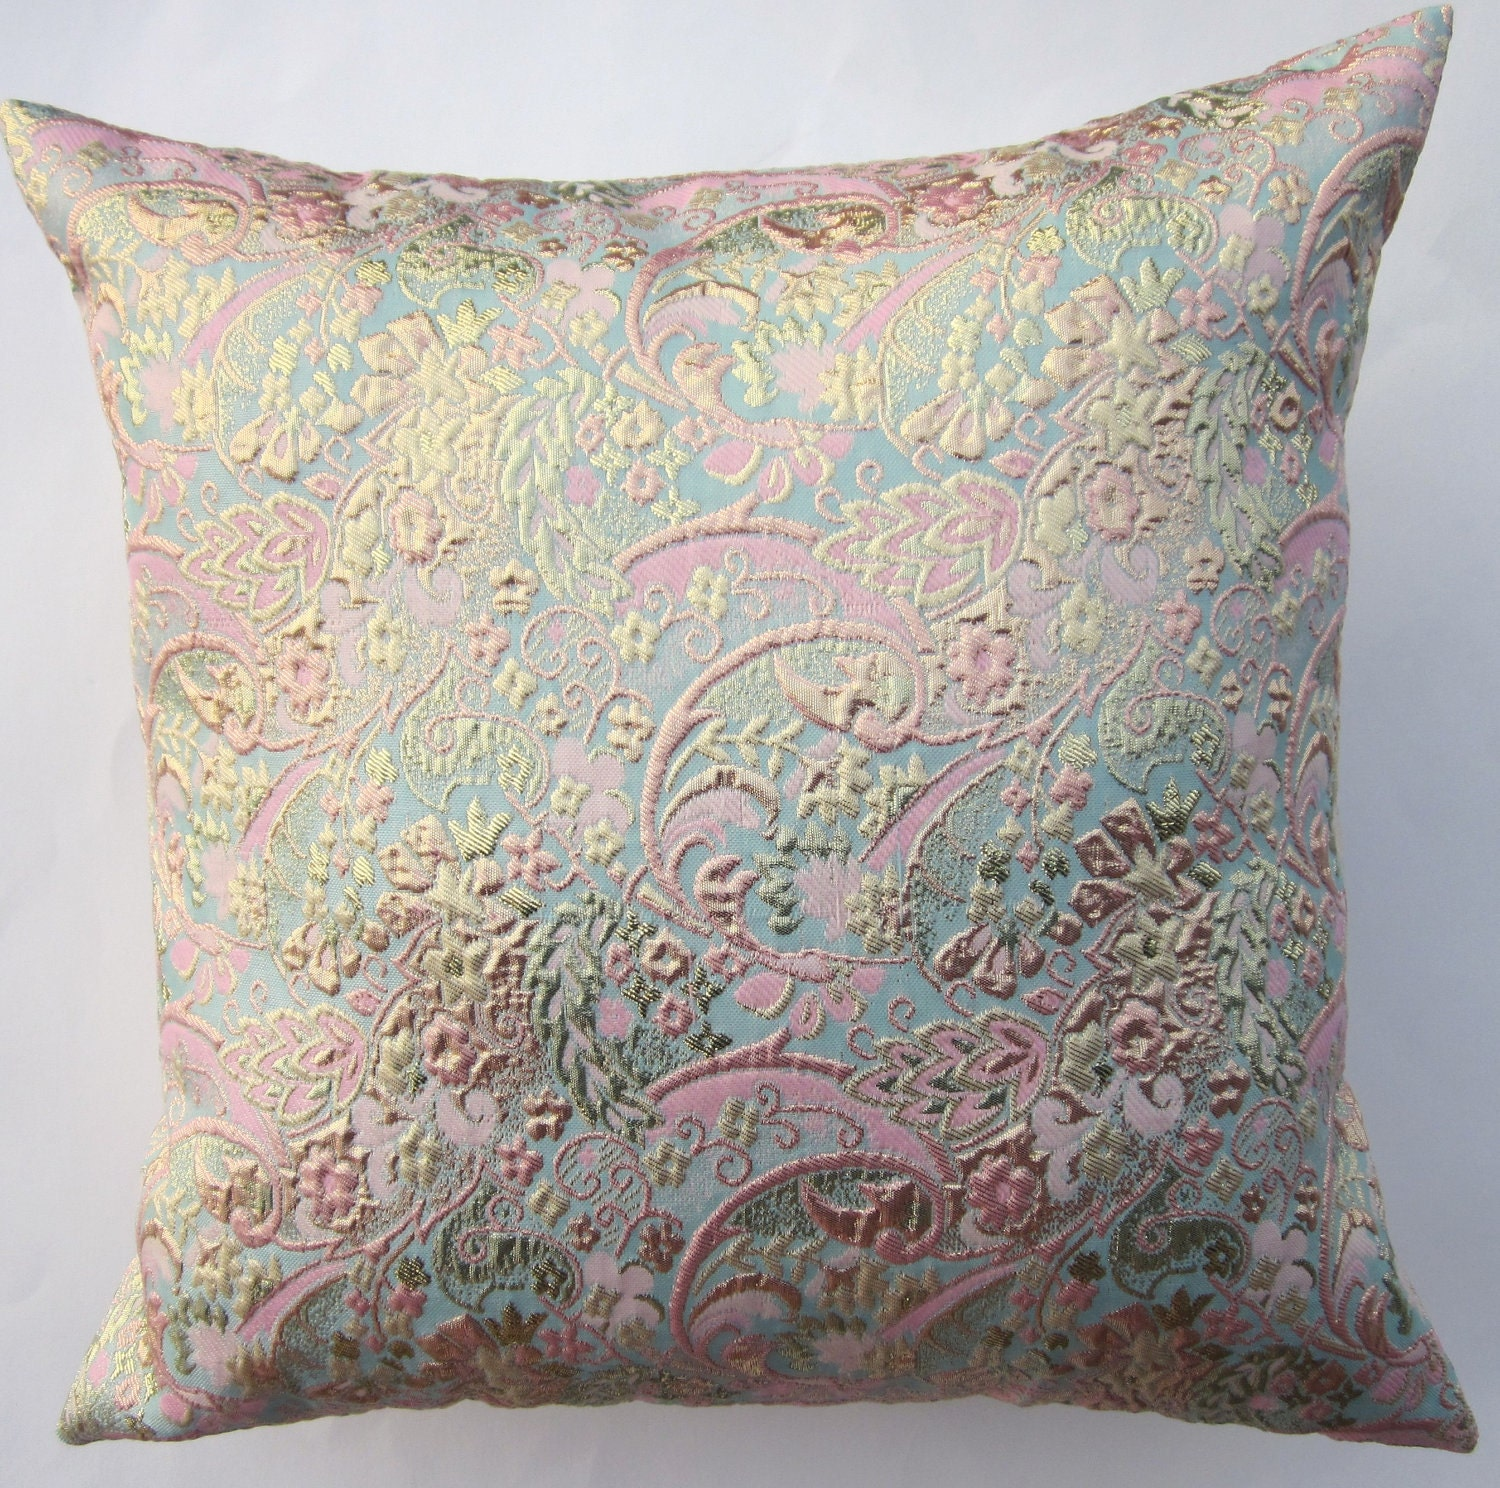 Pale Aqua Throw Pillow : Pale Aqua Pink and Gold Brocade Throw Pillow Cover 16 x 16